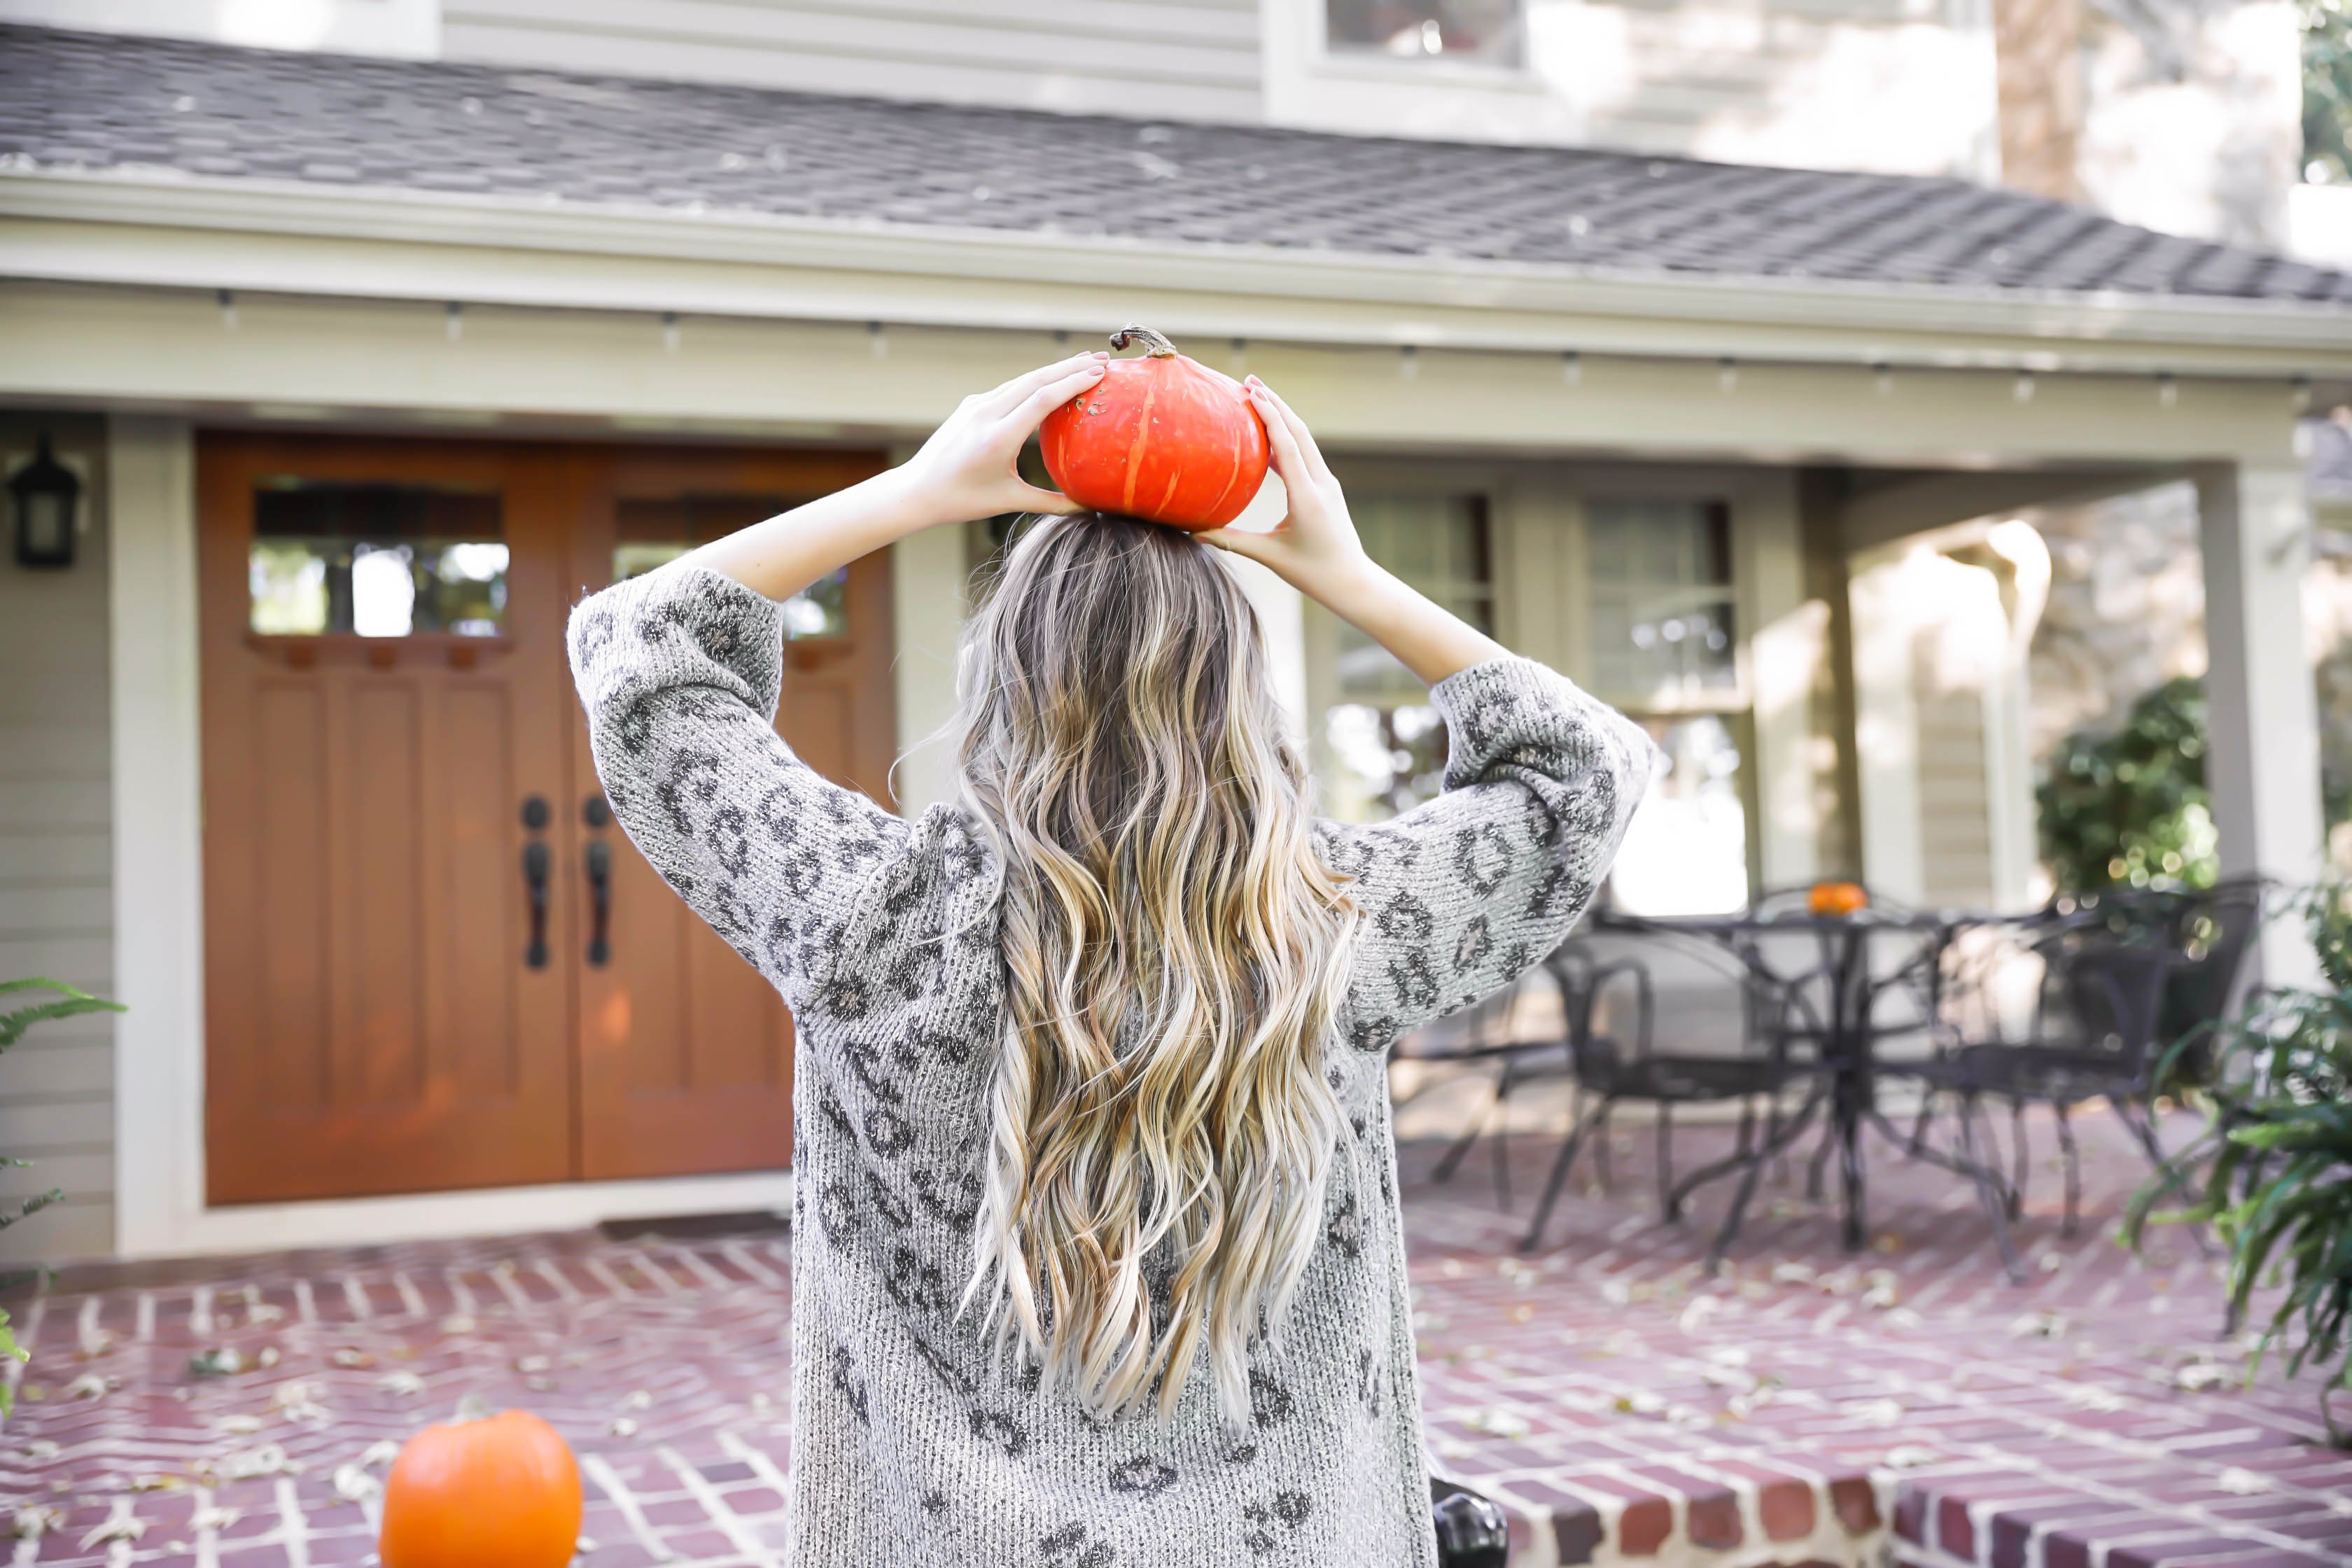 Natural beaded row extensions! The best stylist for NBR extensions in Kansas City is Traci Morby! Fall outfit idea! Sitting on a porch of pumpkins wearing my favorite leopard cardigan! Details on fashion blog daily dose of charm by lauren lindmark